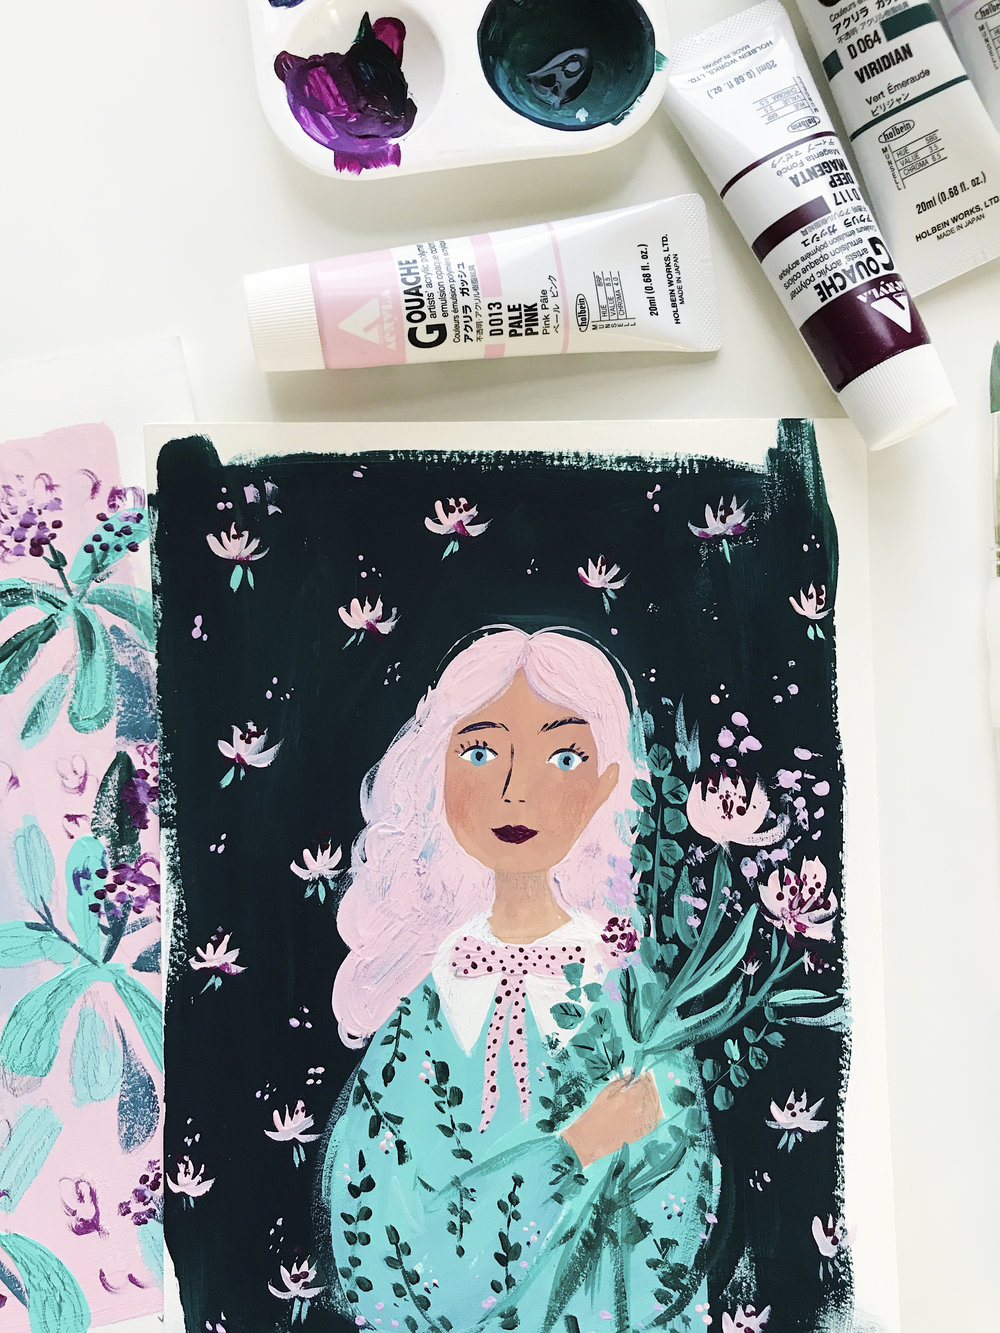 gouache illustration by andsmilestudio viktorija